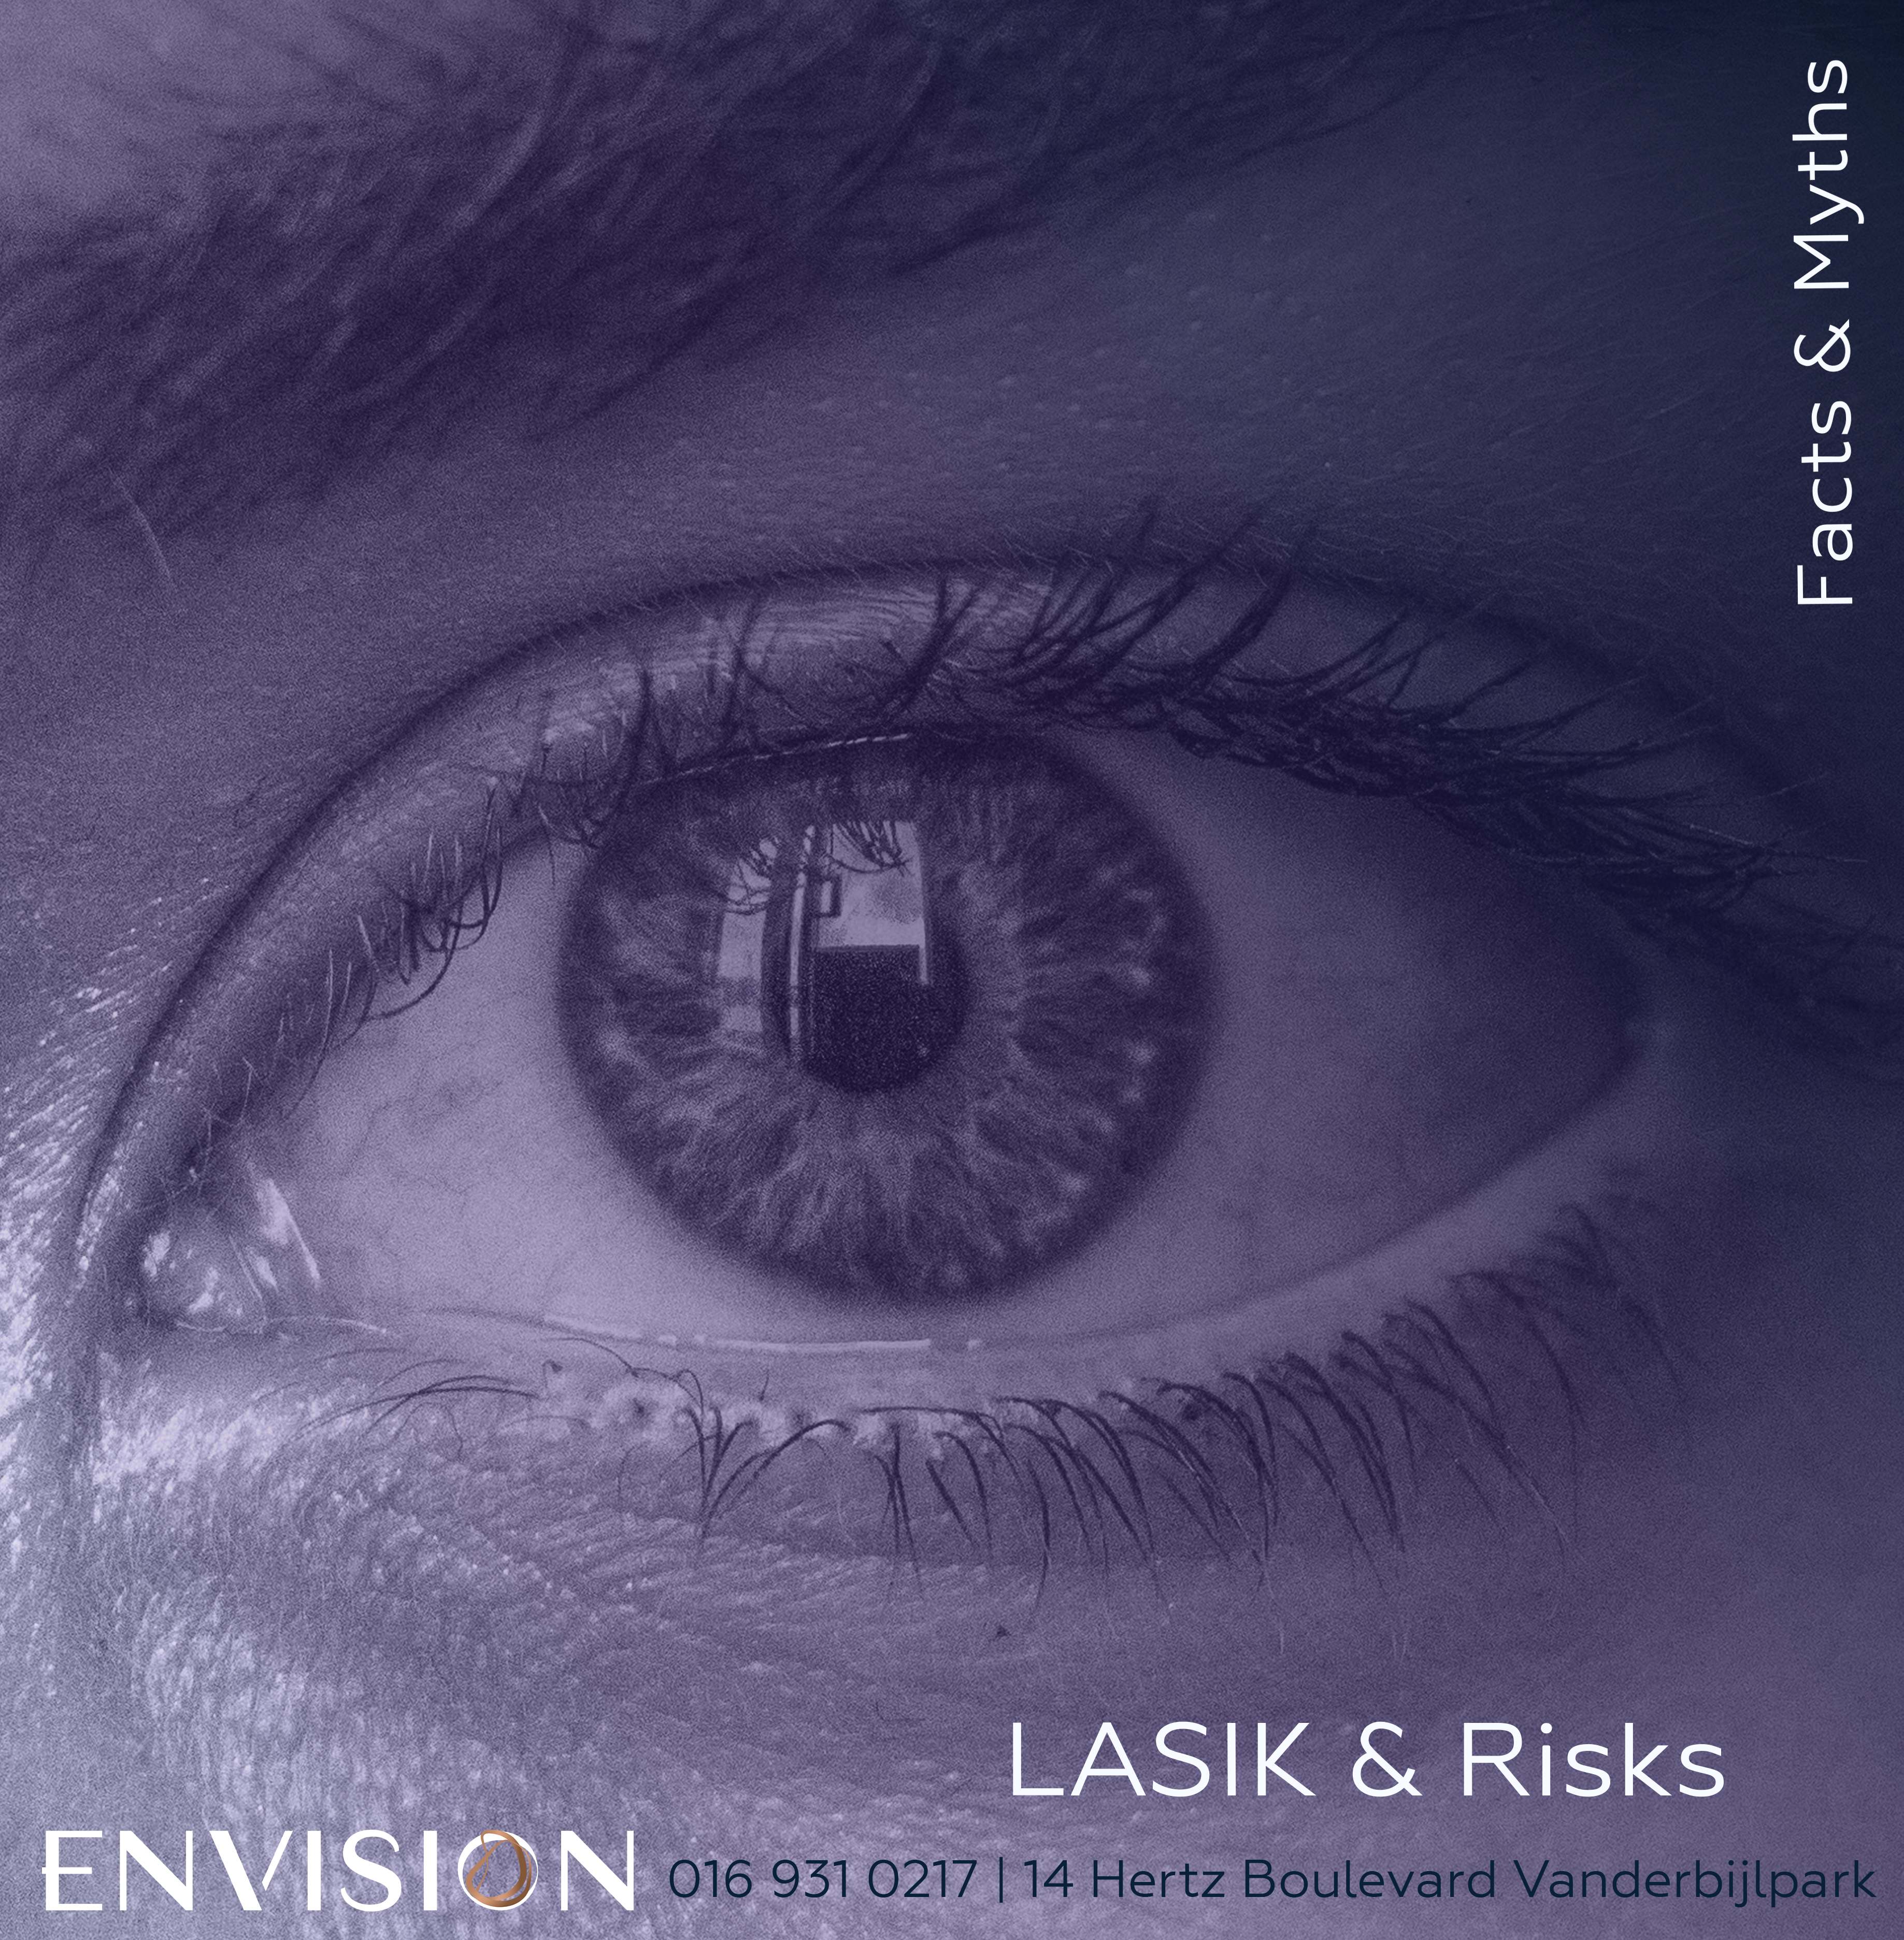 Can the Laser used in LASIK burn your eyes?